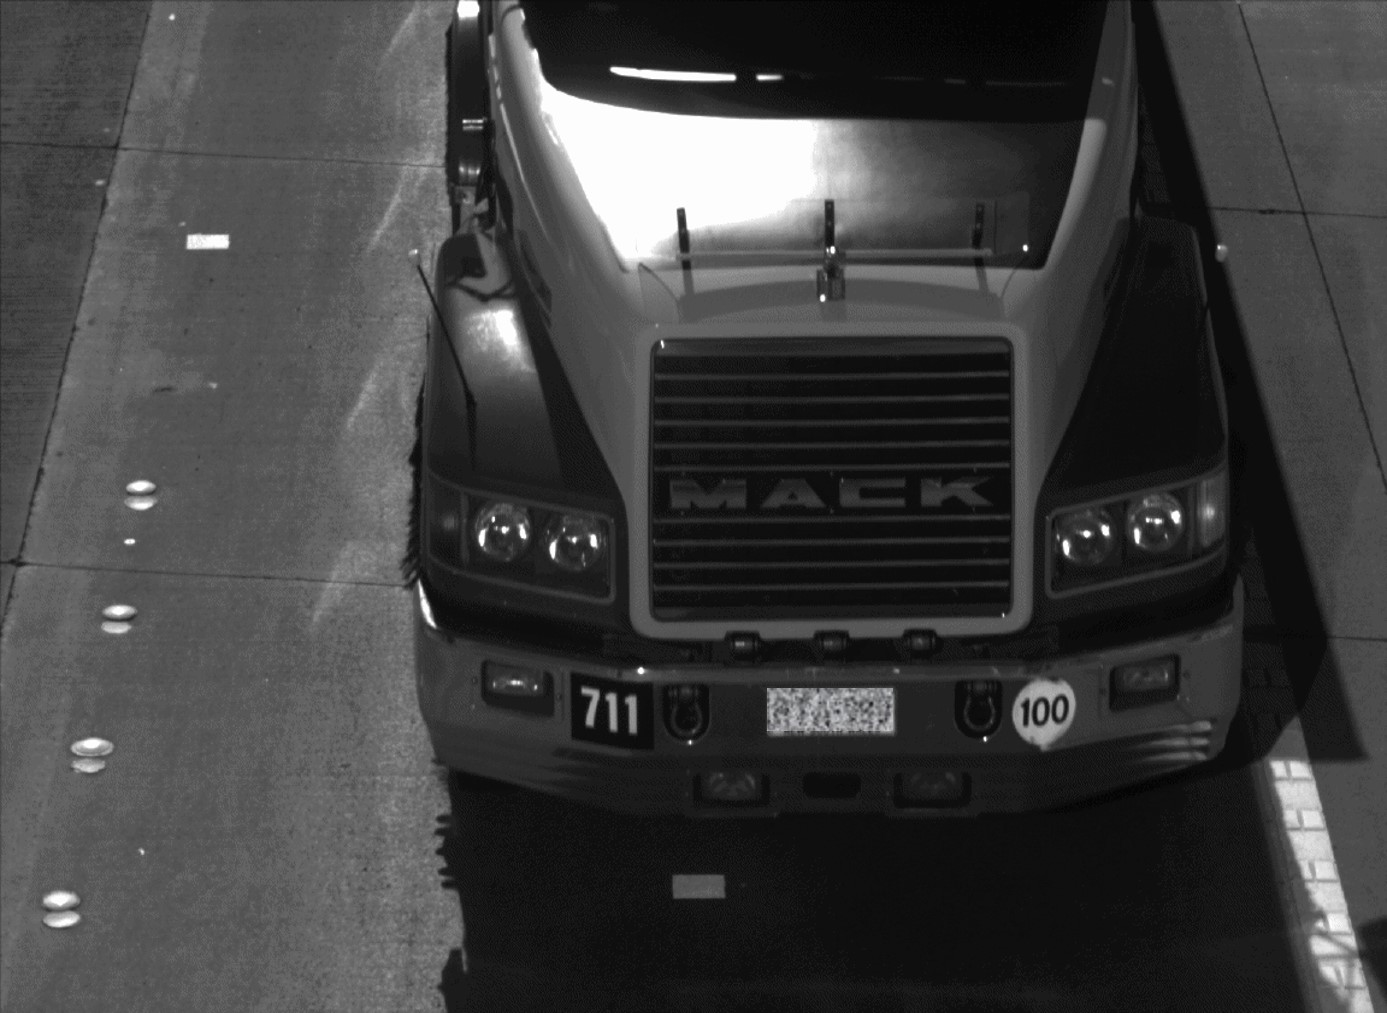 black and white close up image of front of truck, identifying number plate.